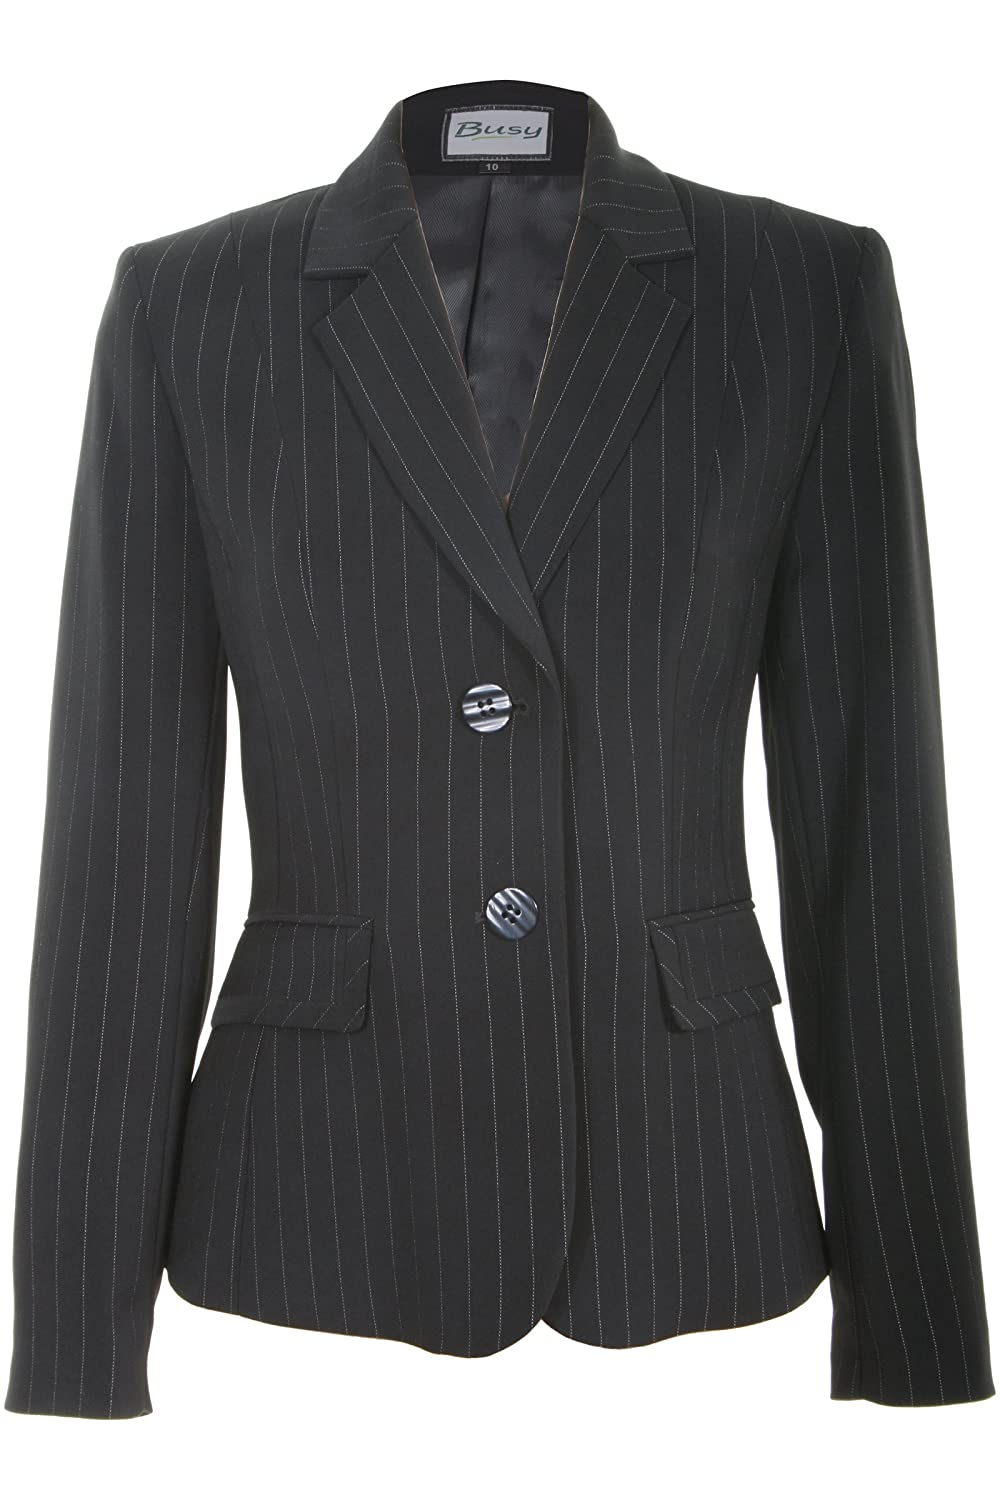 Busy Clothing Womens Black Stripe Suit Jacket